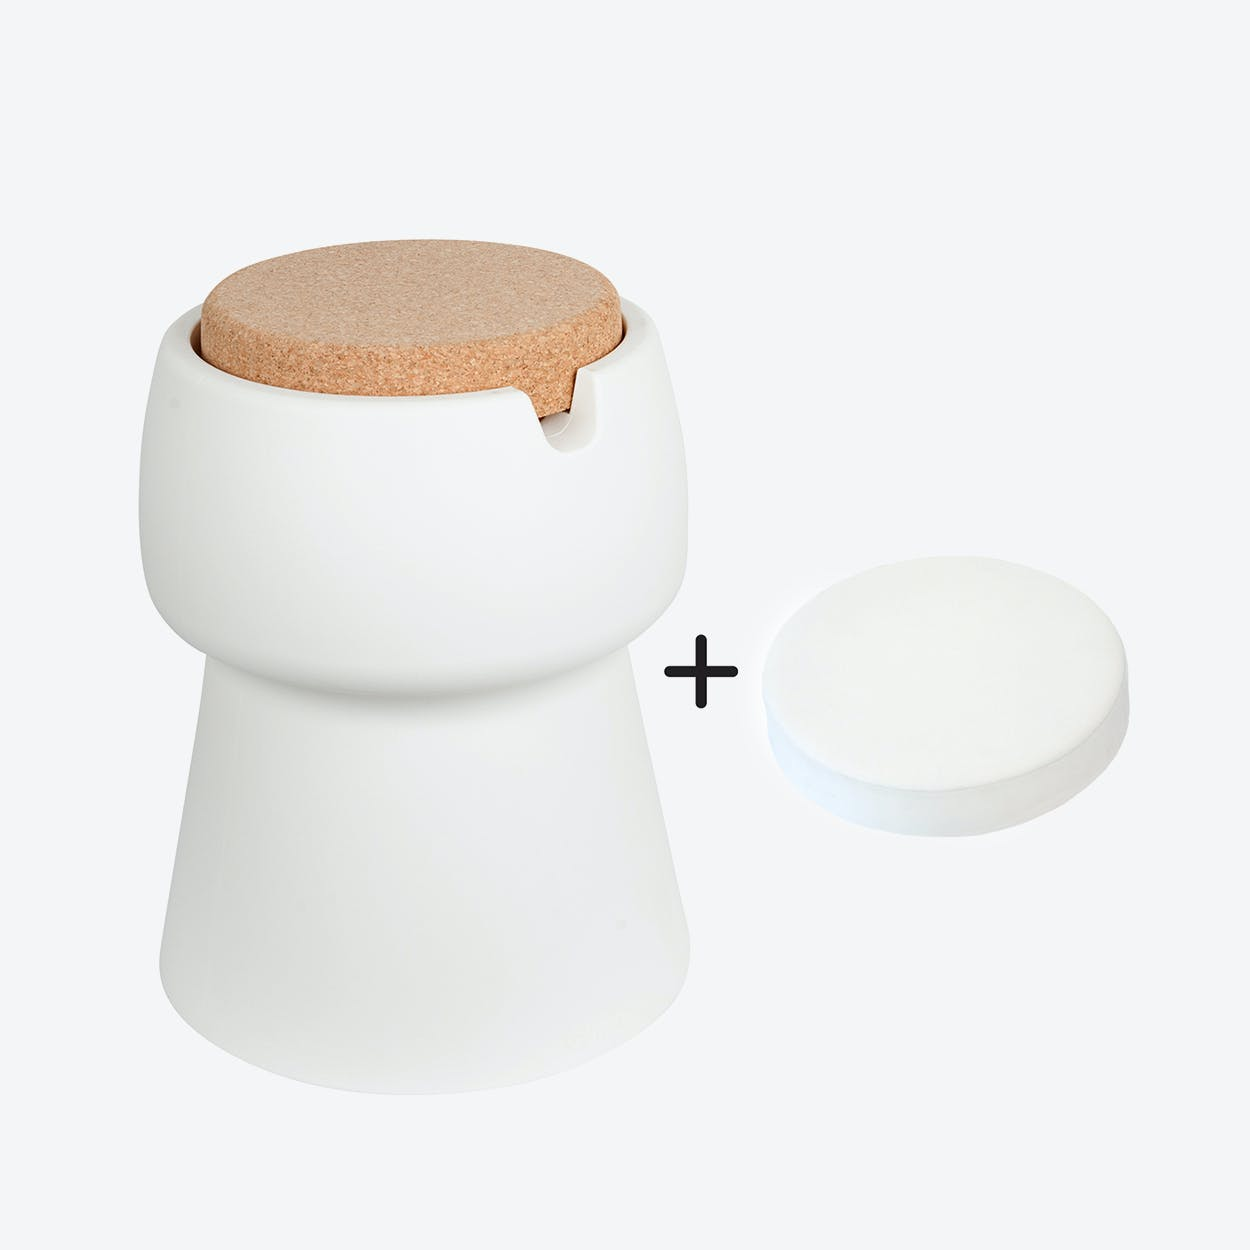 Champ Stool/Cooler in White: Cork + White Outdoor Cushion